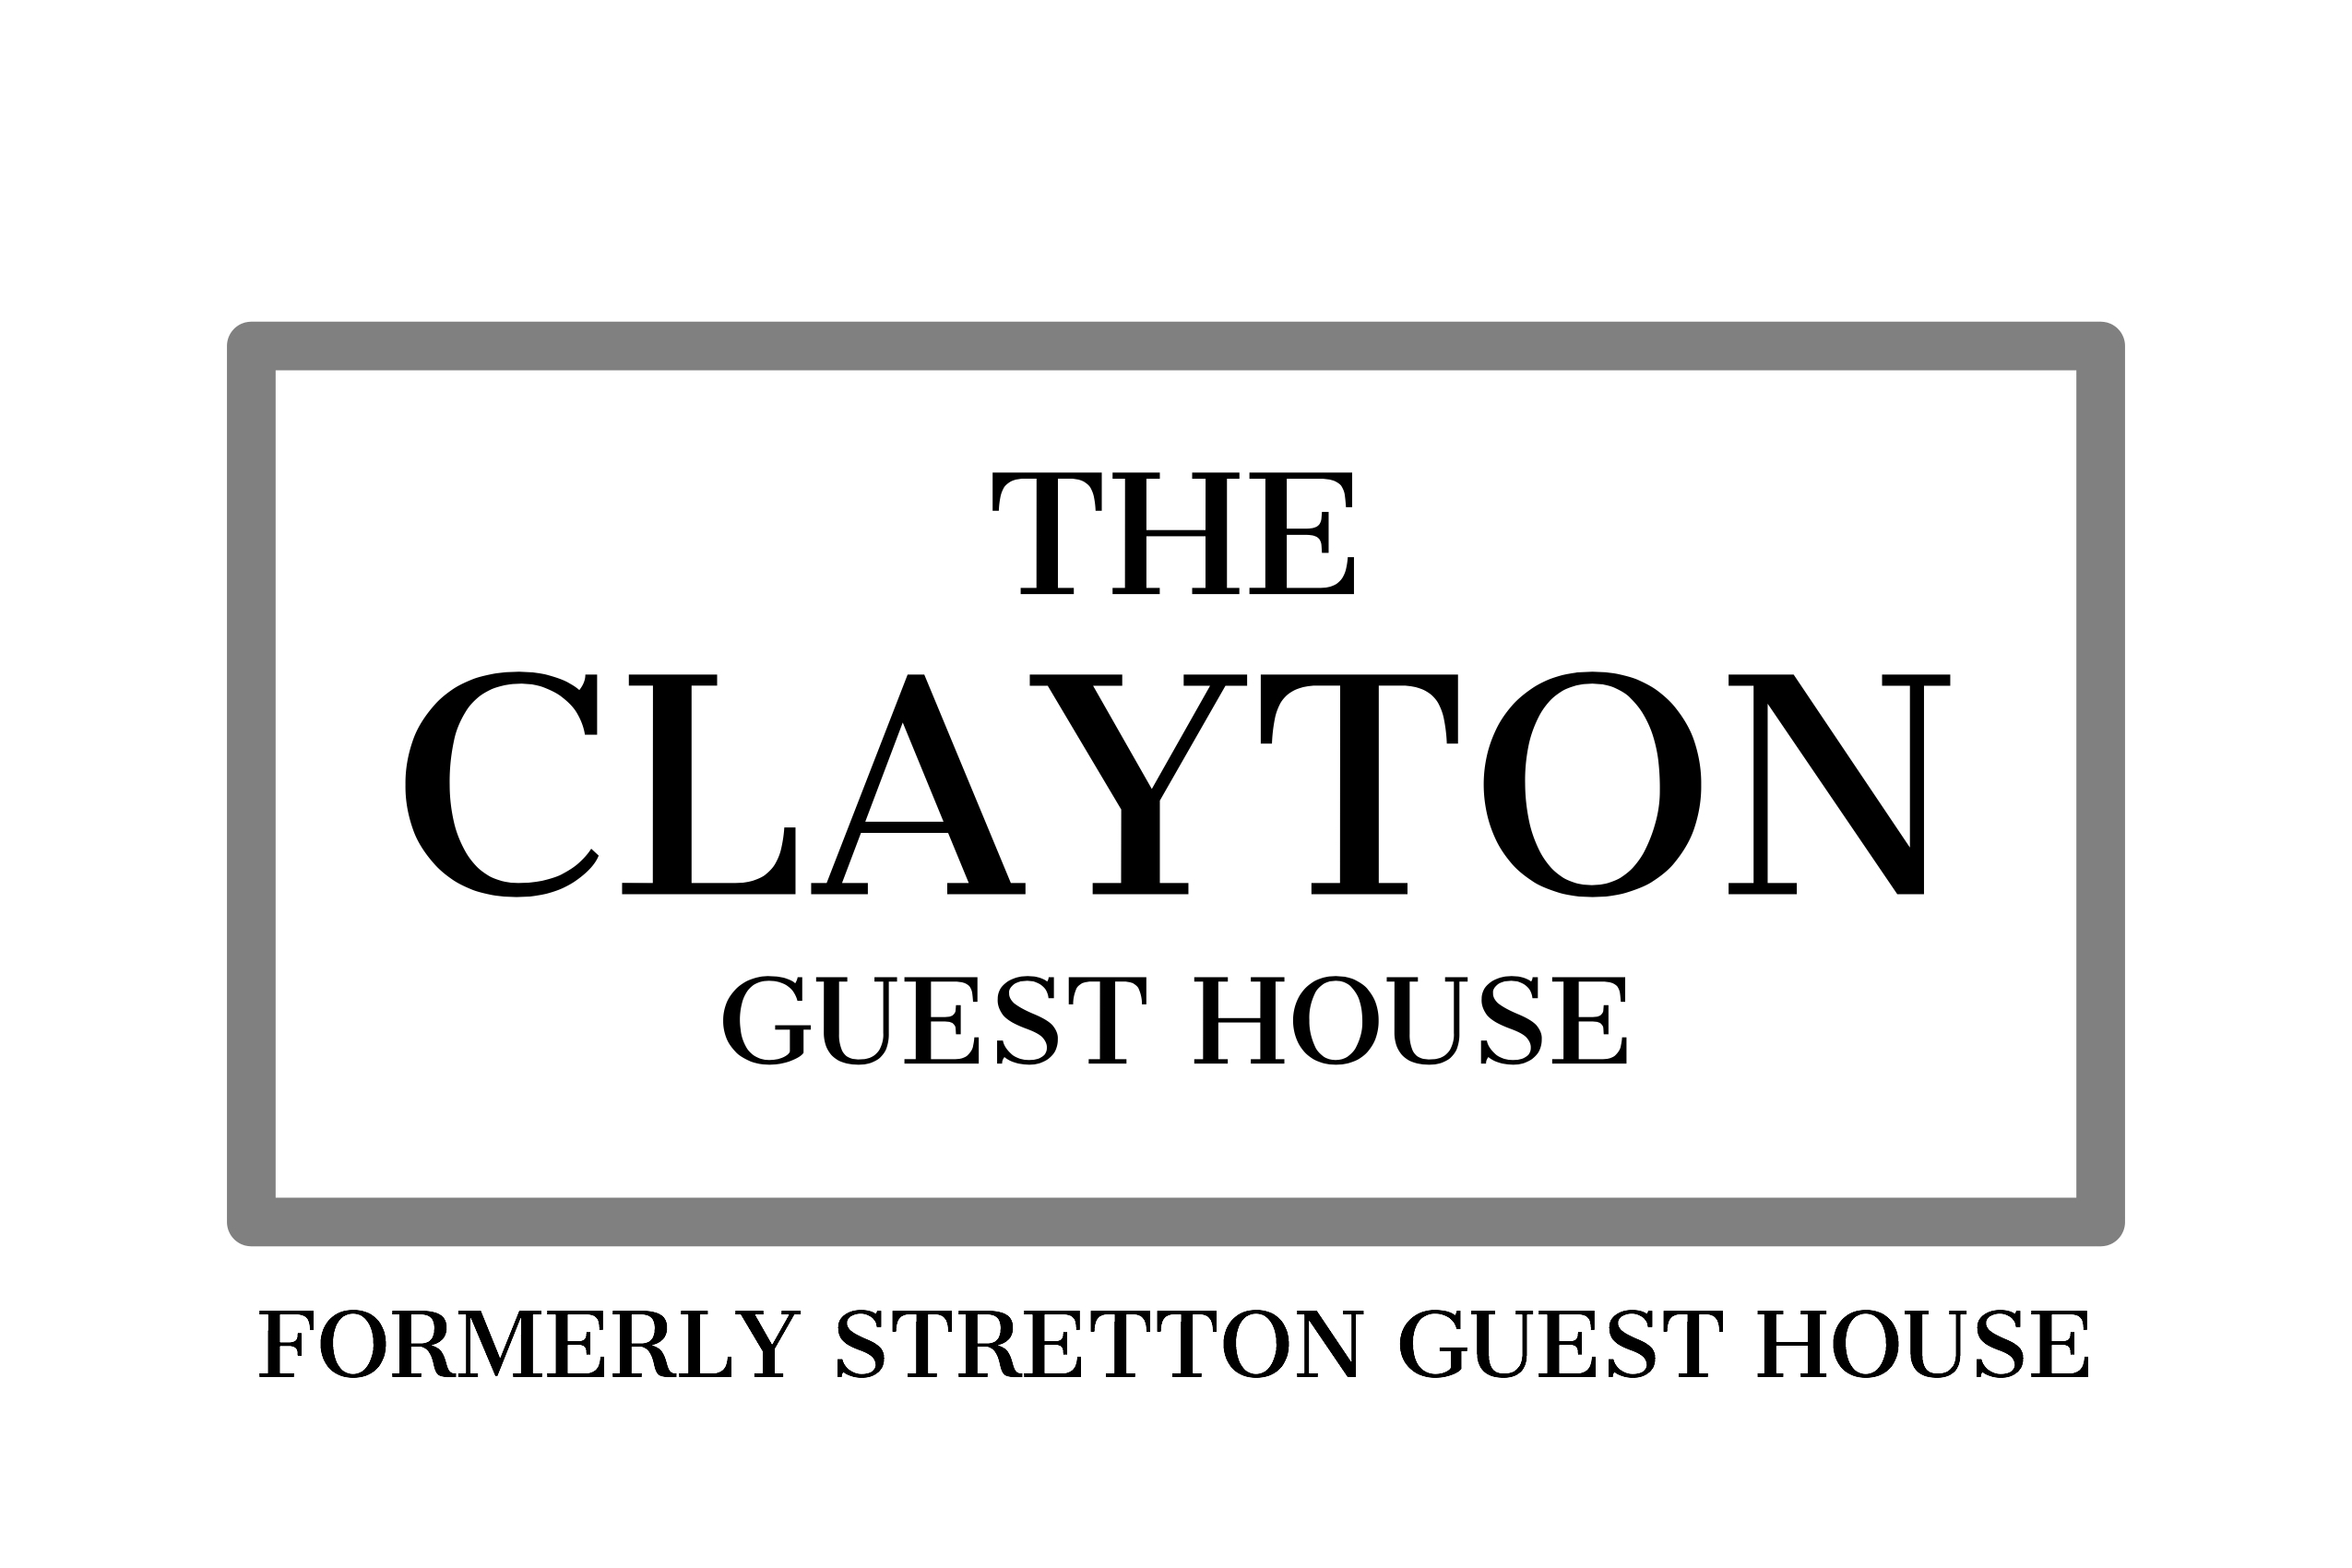 Logo of The Clayton Guest House